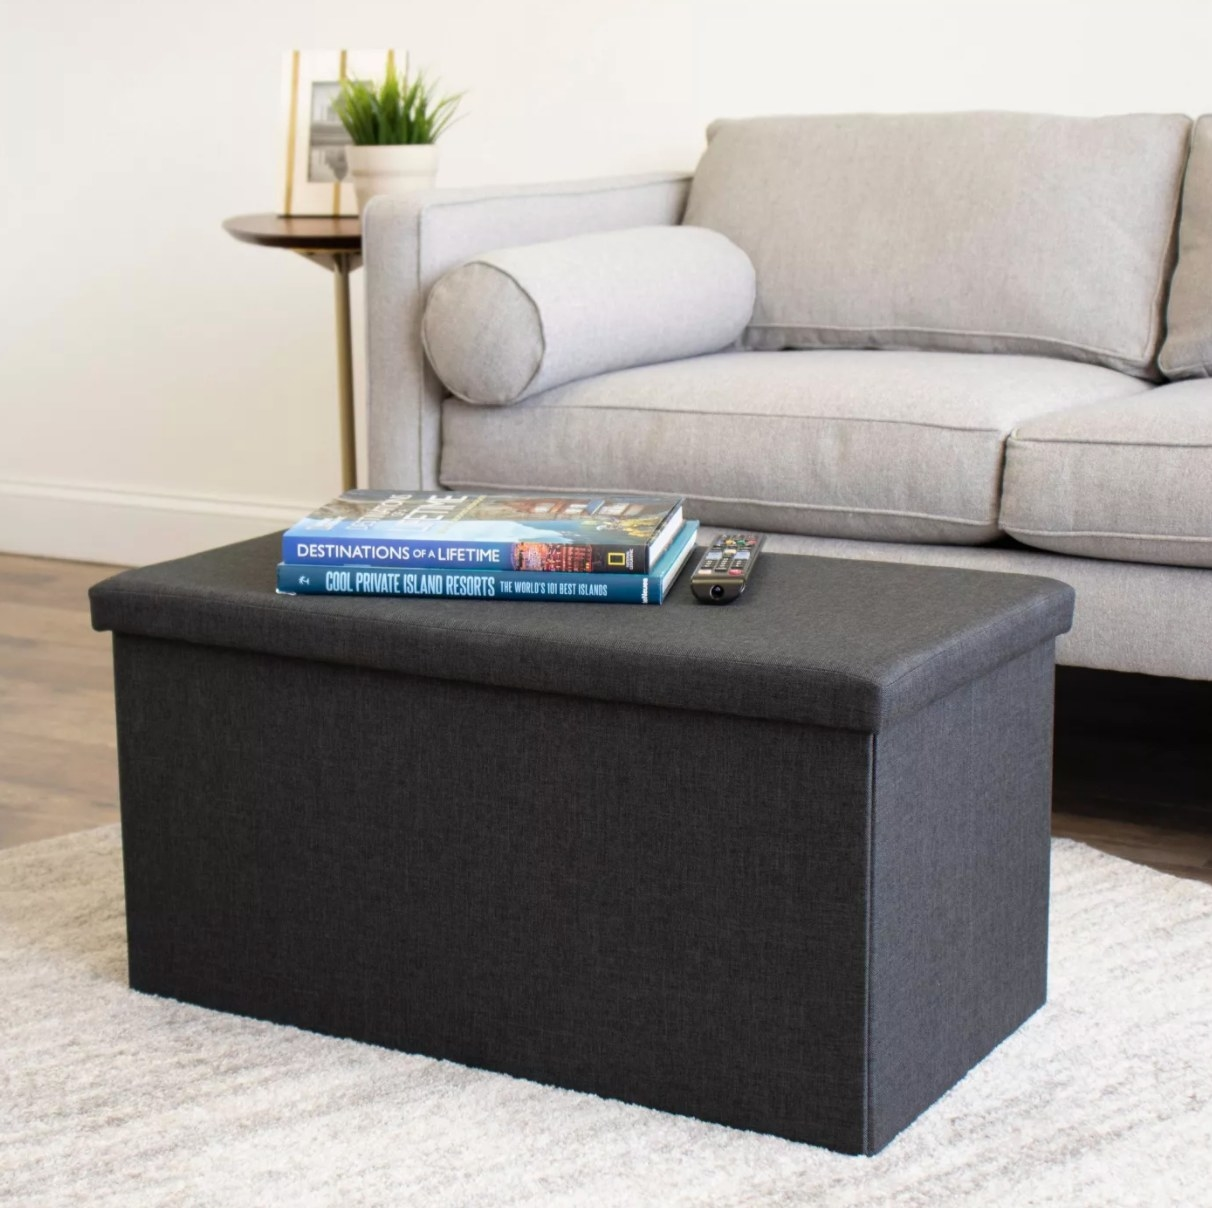 The heathered storage ottoman in charcoal gray